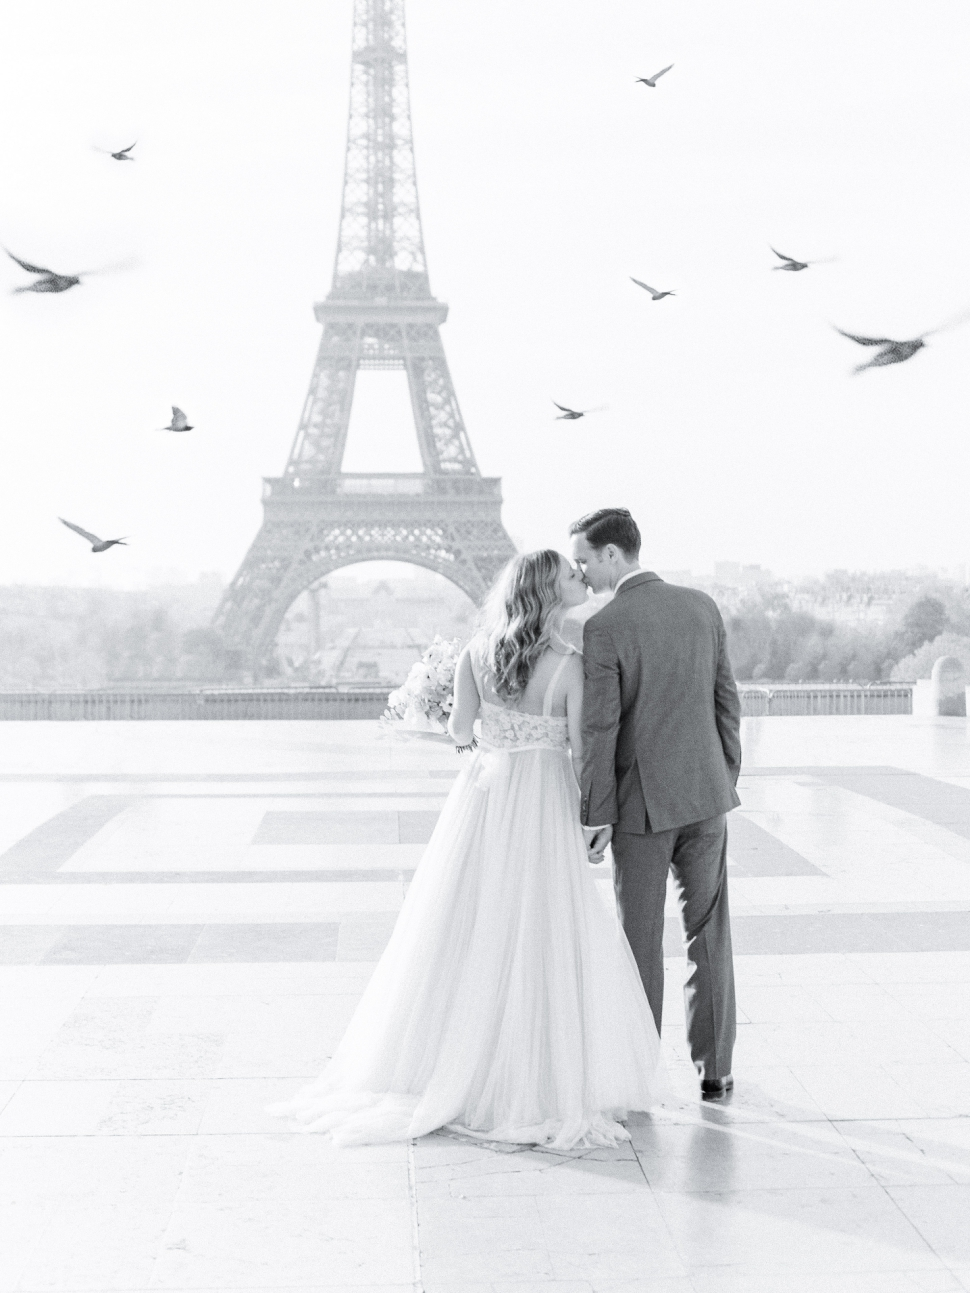 Romantic Eiffel Tower Elopement